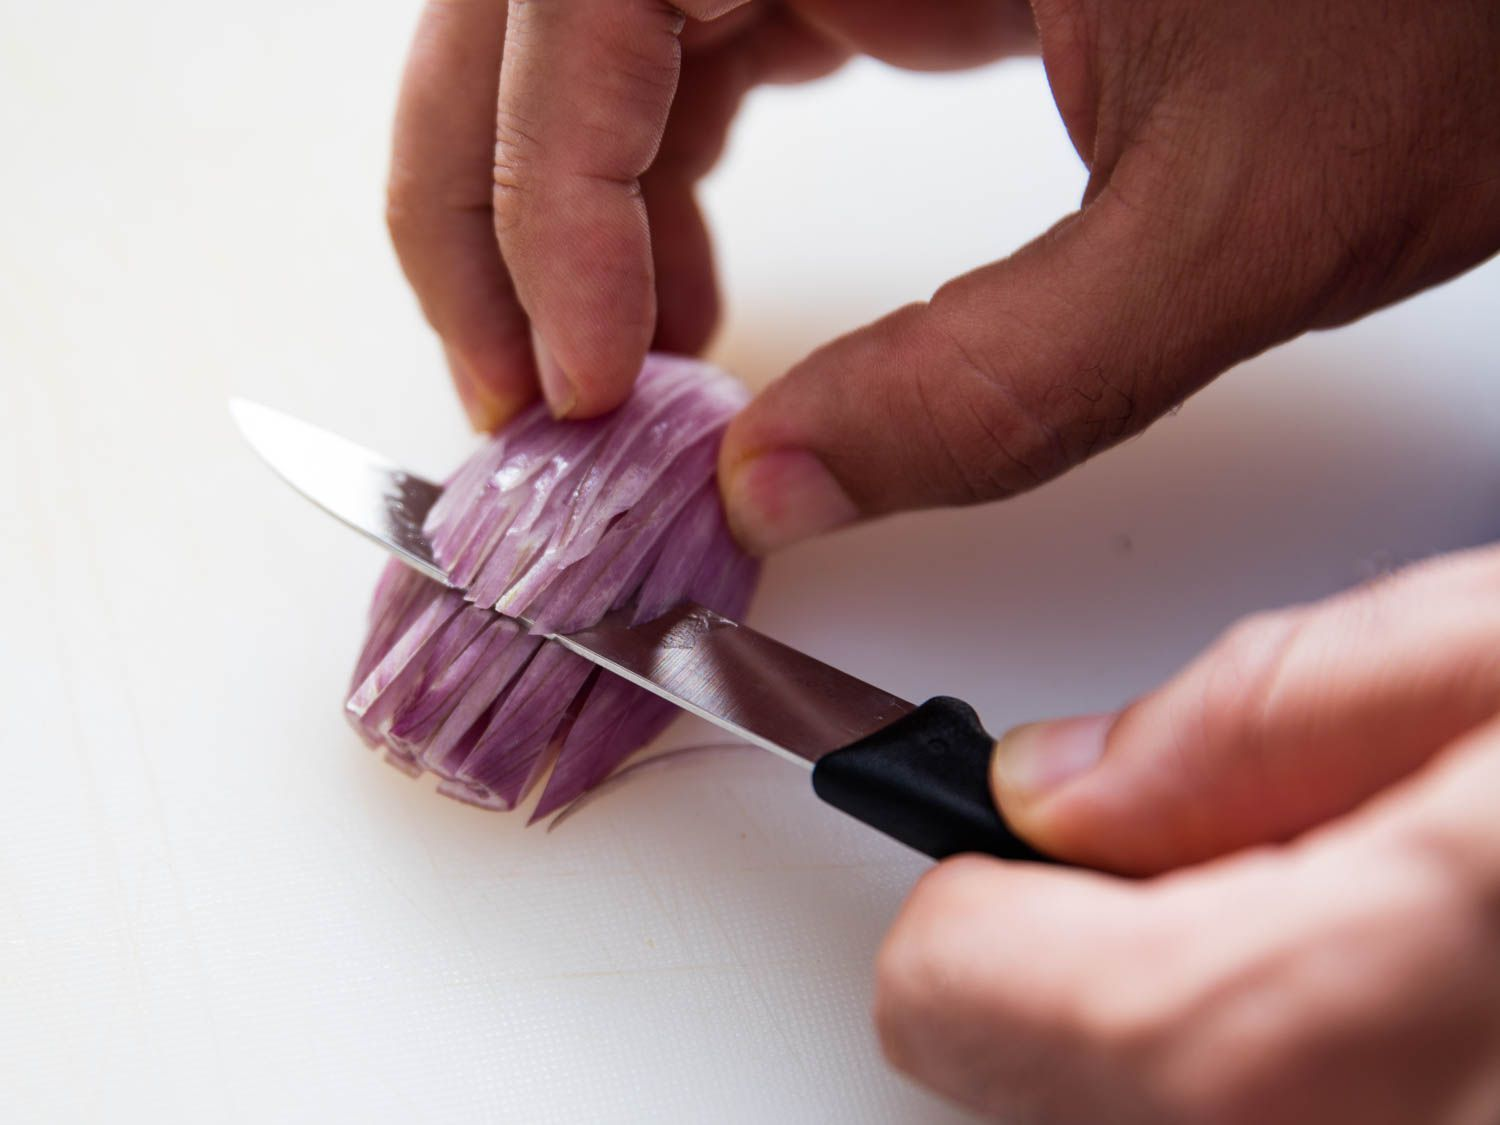 Mincing a shallot with a paring knife.